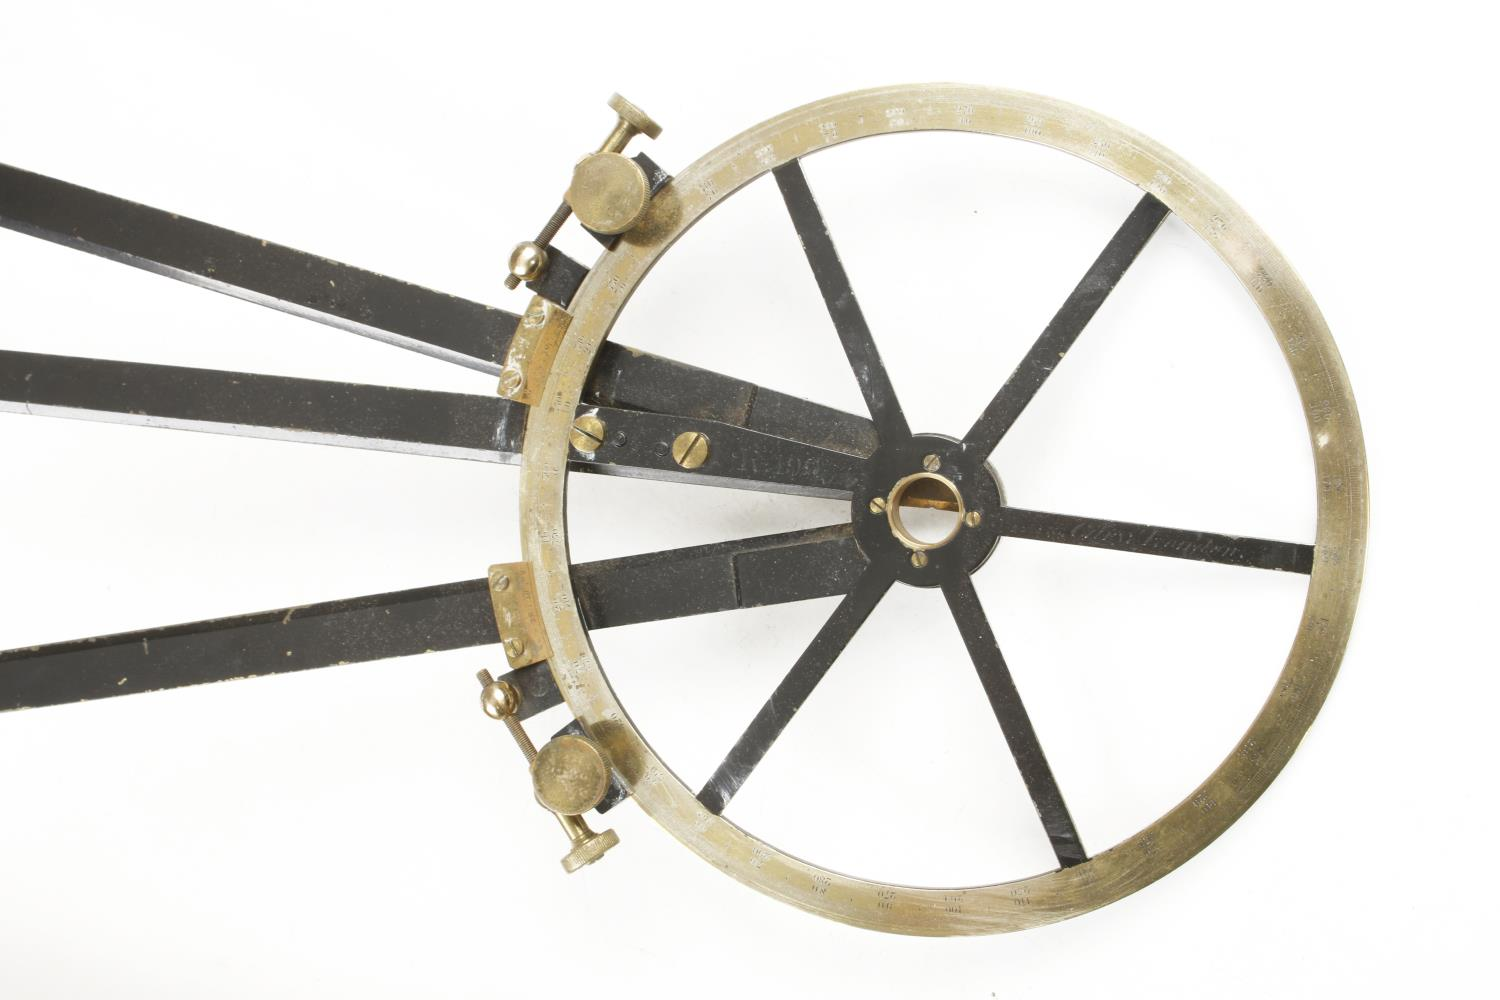 A lacquered brass course indicator by CARY London No R199 with extensions in orig box G+ - Image 2 of 3